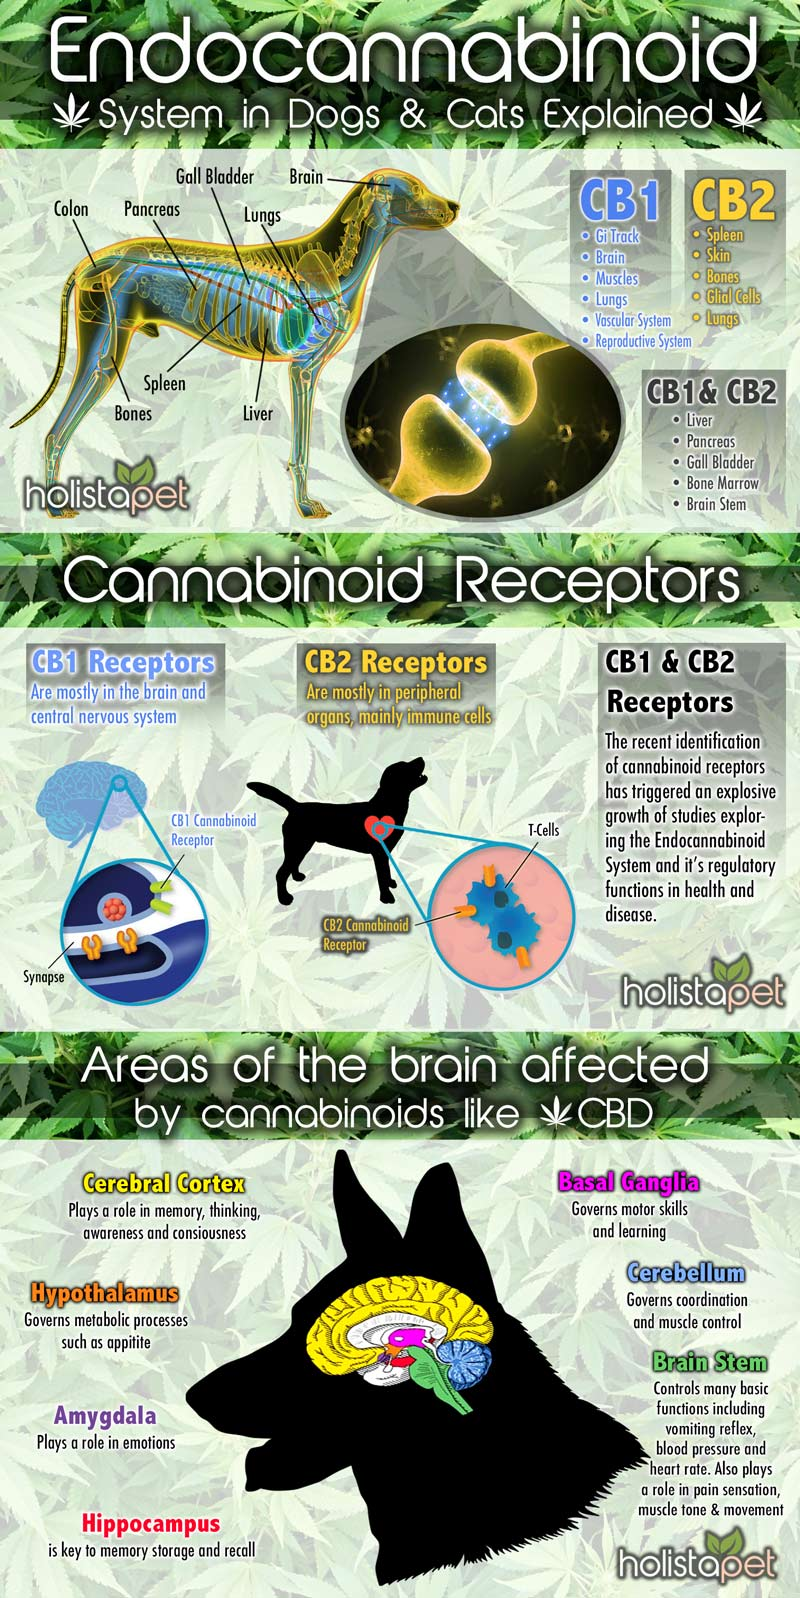 Do dogs have an endocannabinoid system